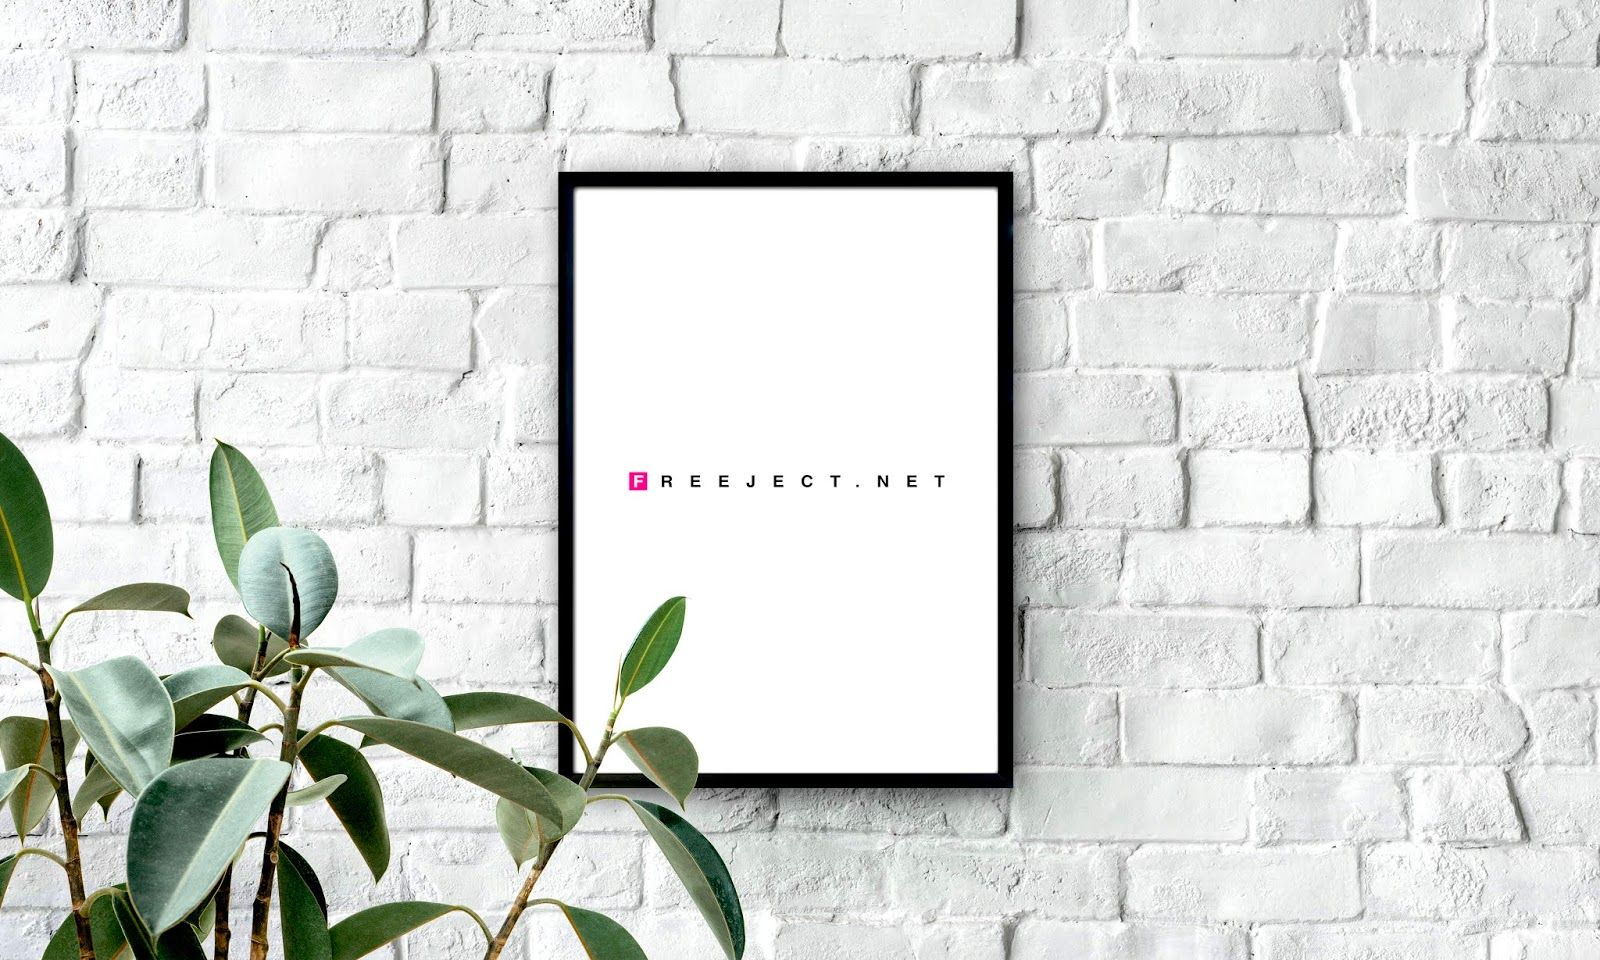 Freeject Net Free Download Frame At Home Mock Up Template Psd Free Download Photoshop Free Graphic Design Templates